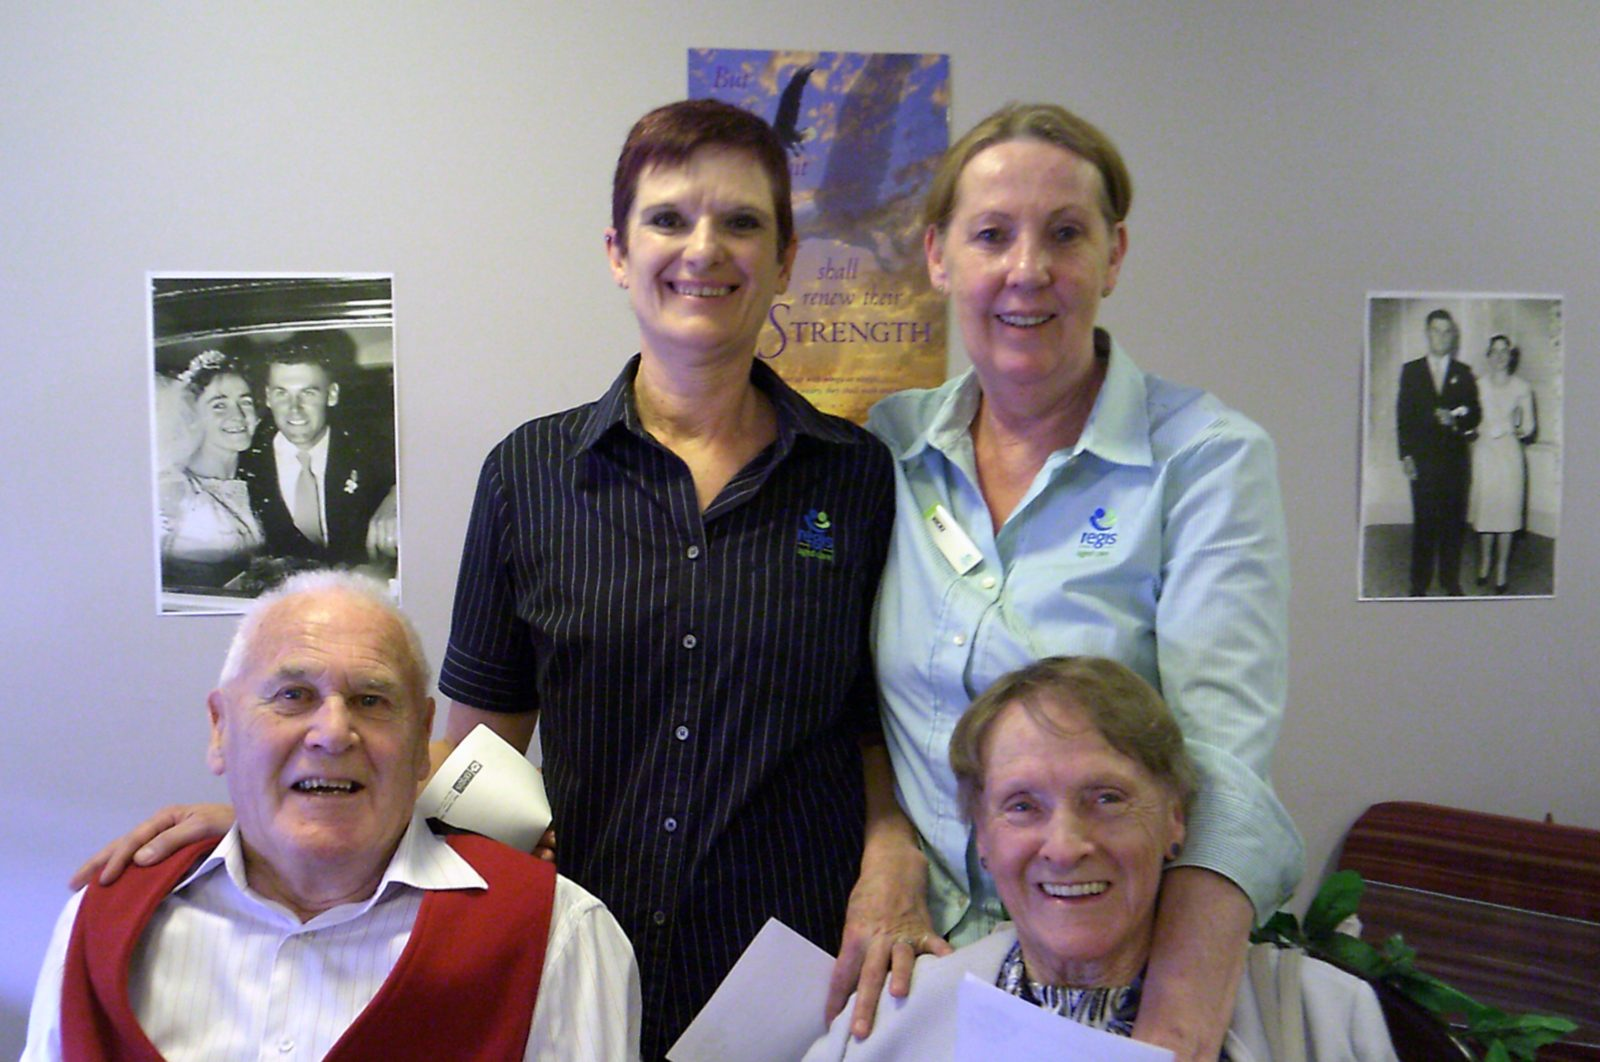 Regis Tasmania Staff & Residents